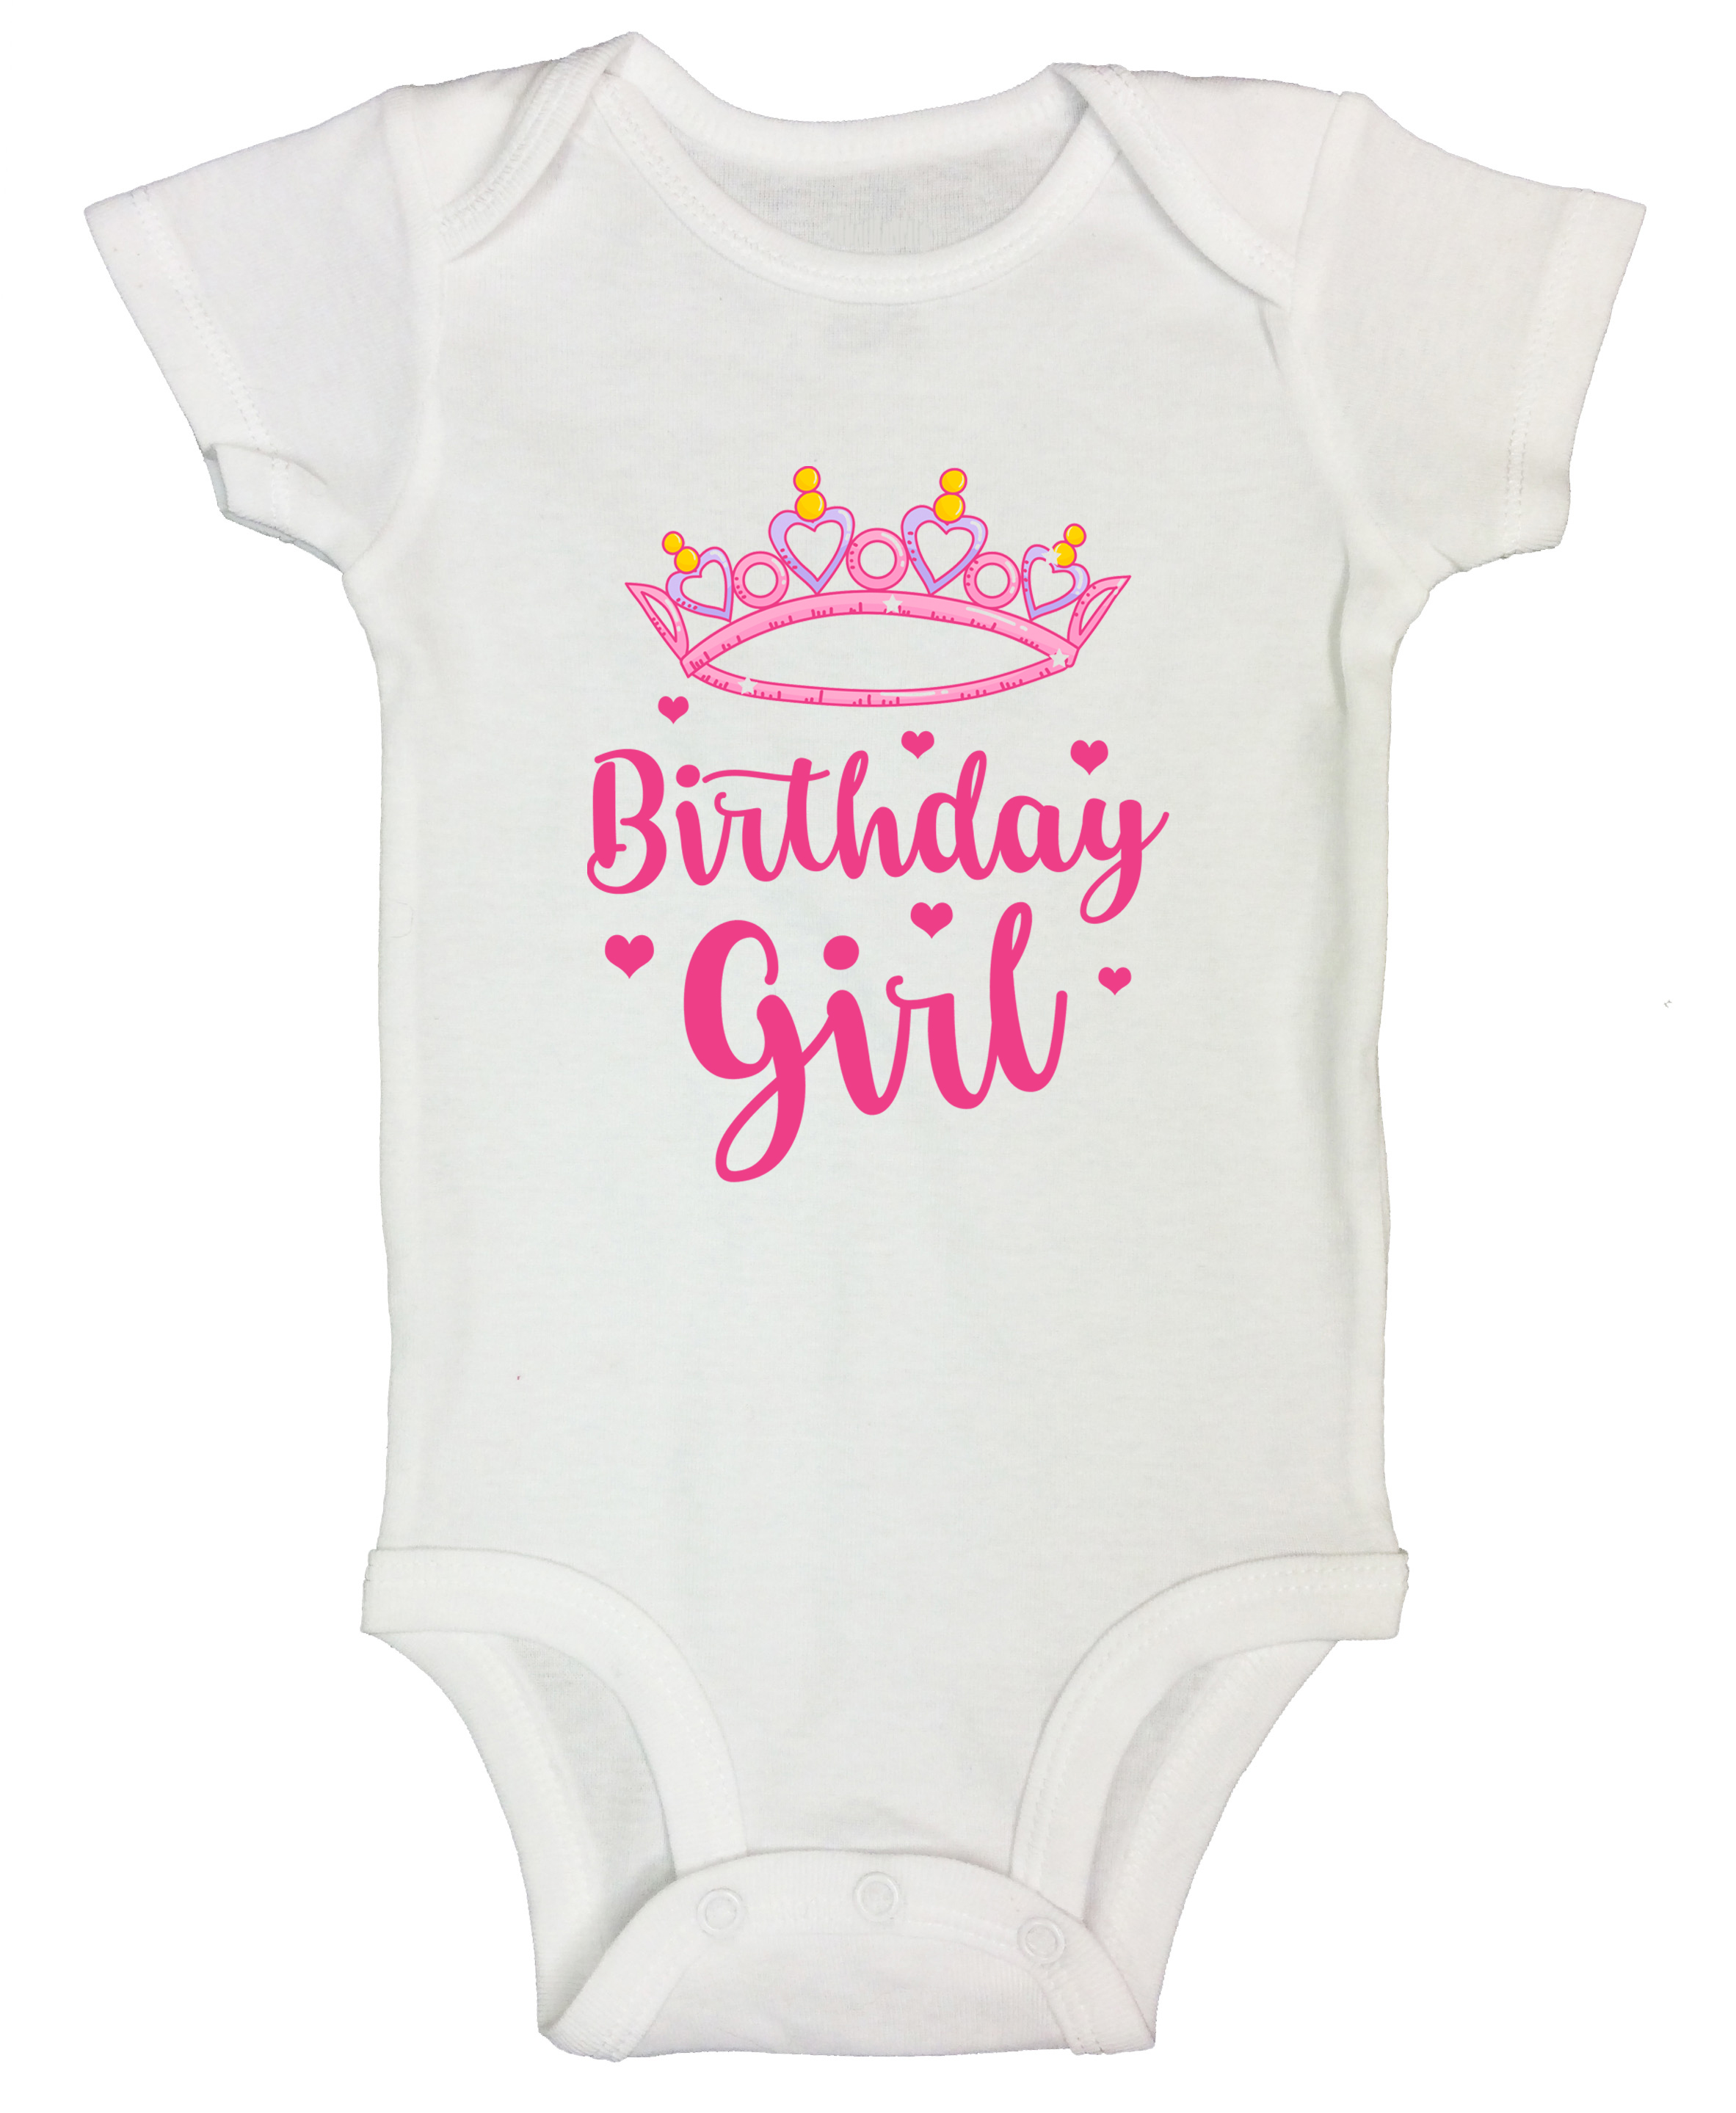 Princess Monthly Birthday Funny Toddler White Shirt With Saying